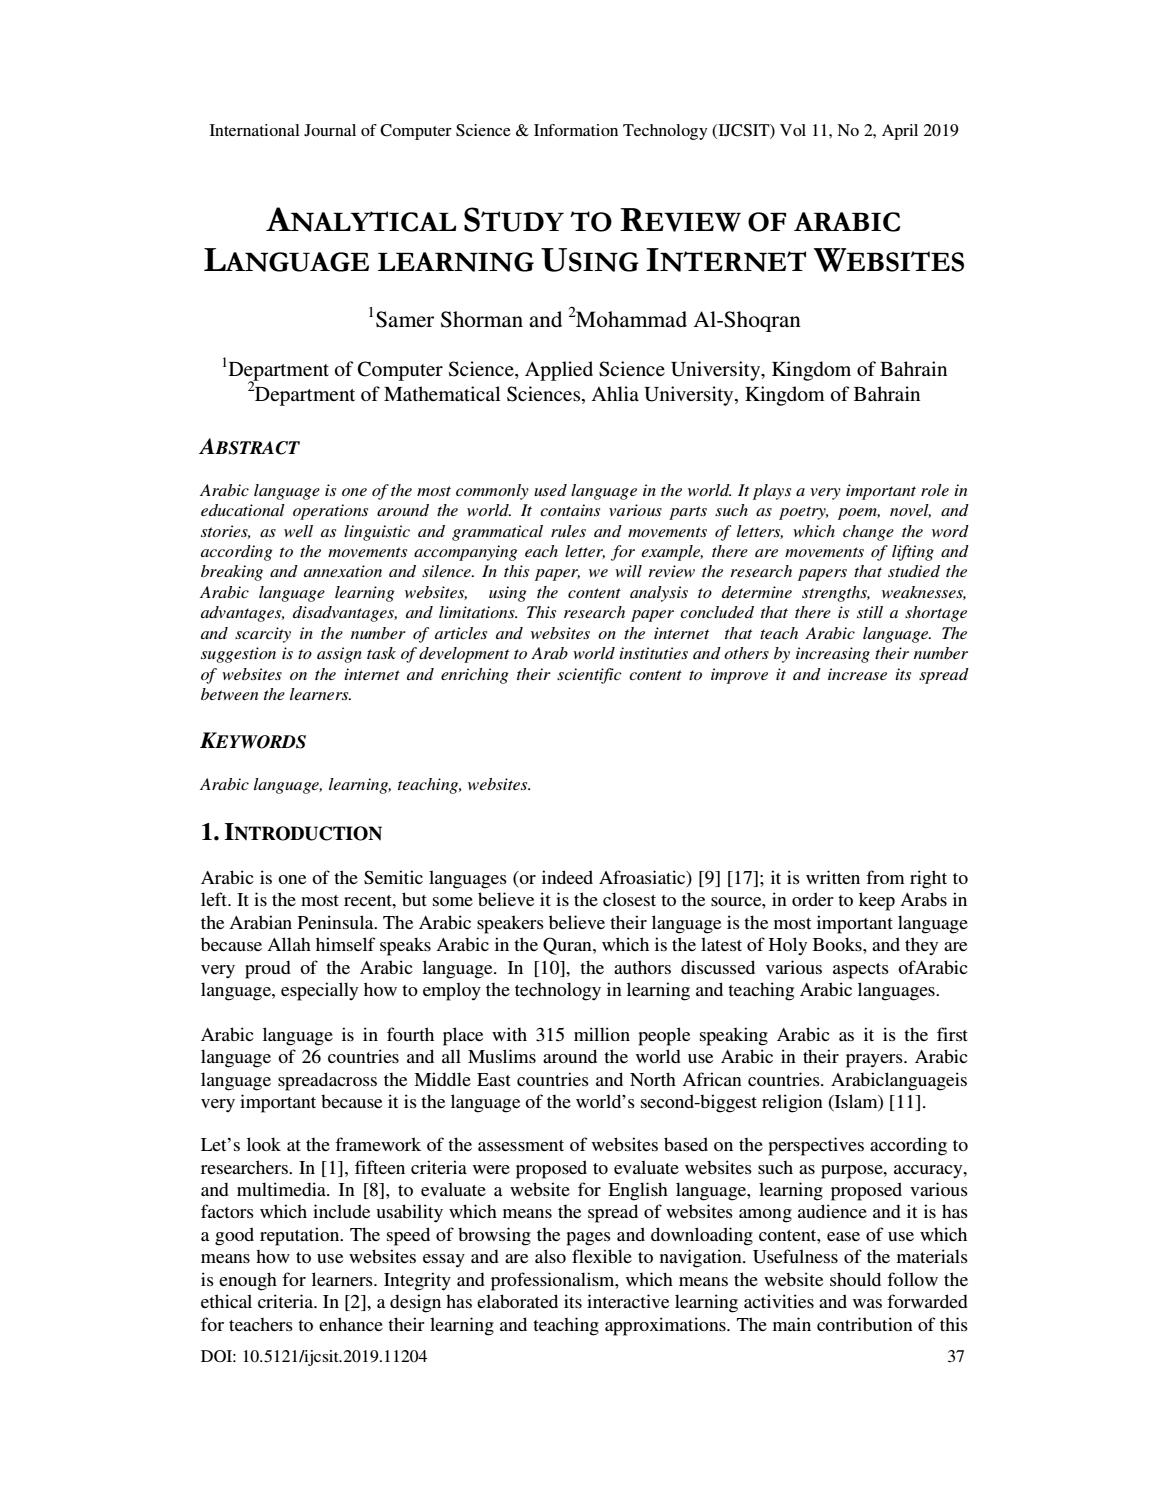 Analytical Learning analytical study to review of arabic language learning using